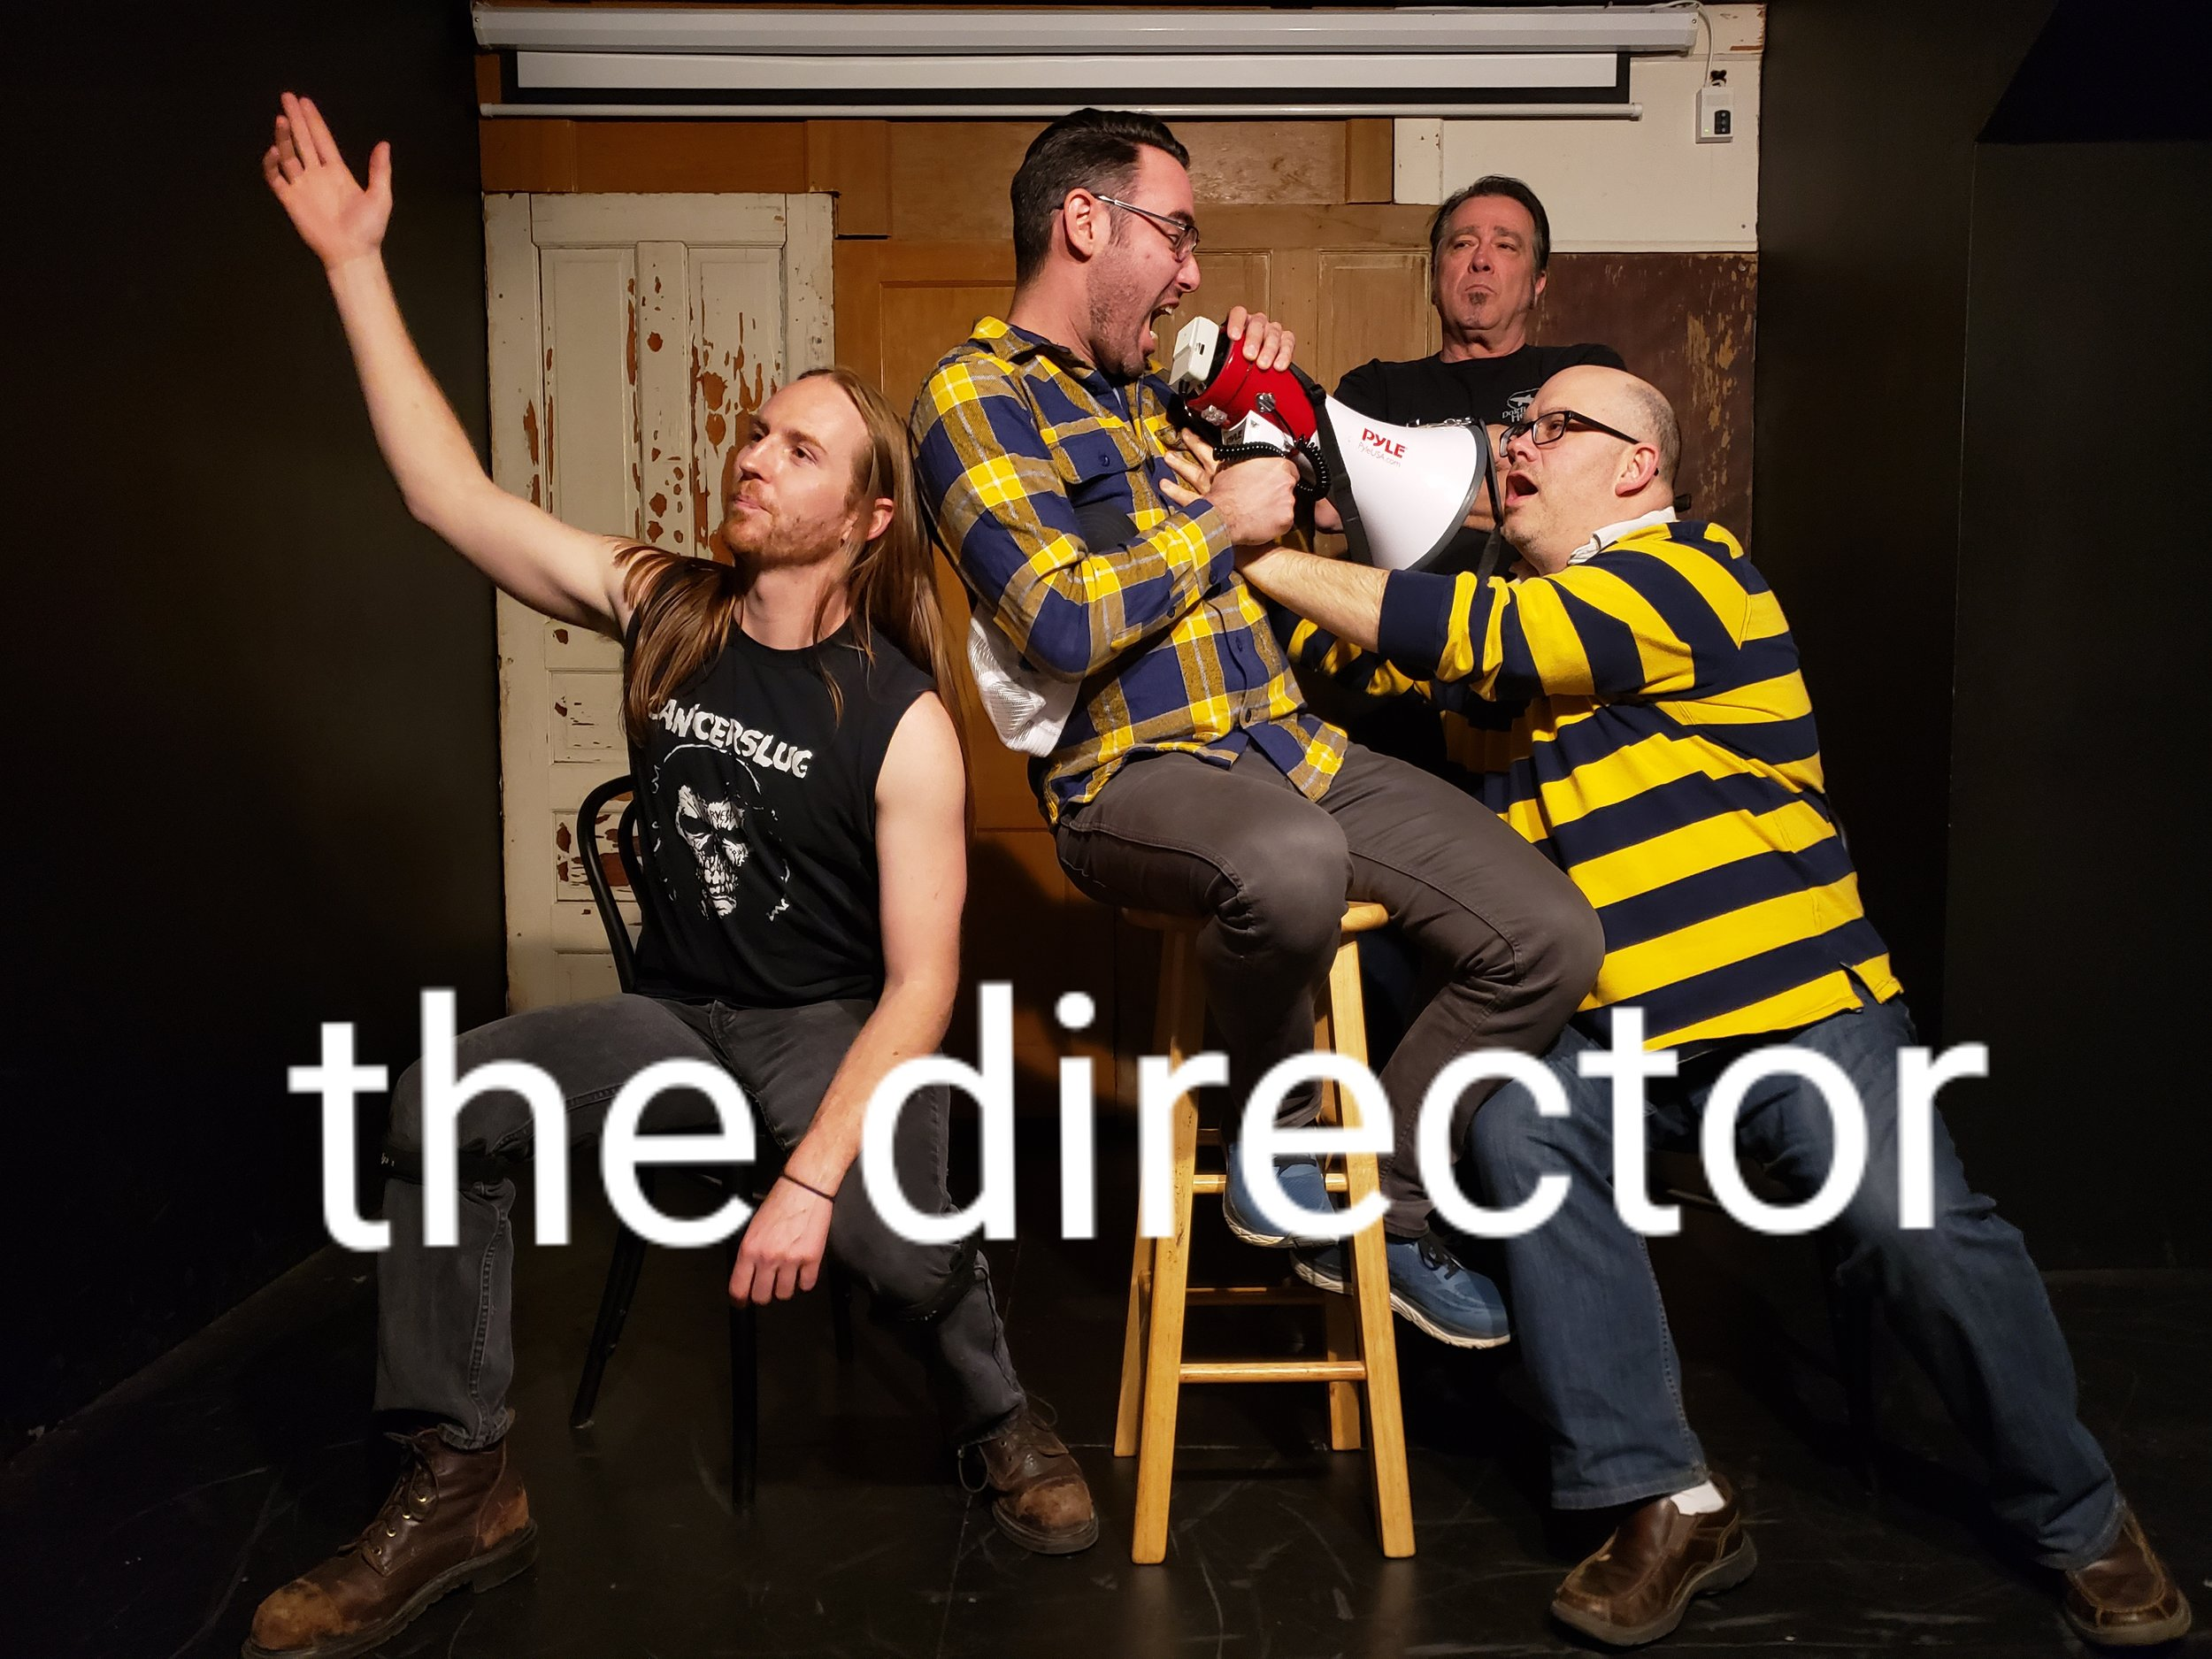 """The Director is a chaotic show loosely narrated and edited by a """"director"""" while a camera streams the action onto a screen behind the stage giving the audience multiple perspectives of the scene. Experienced players develop the narrative while audience members are invited to jump into the scenes to expand the cast. As the camera follows the actors the stage expands to anywhere inside or outside of the theater."""